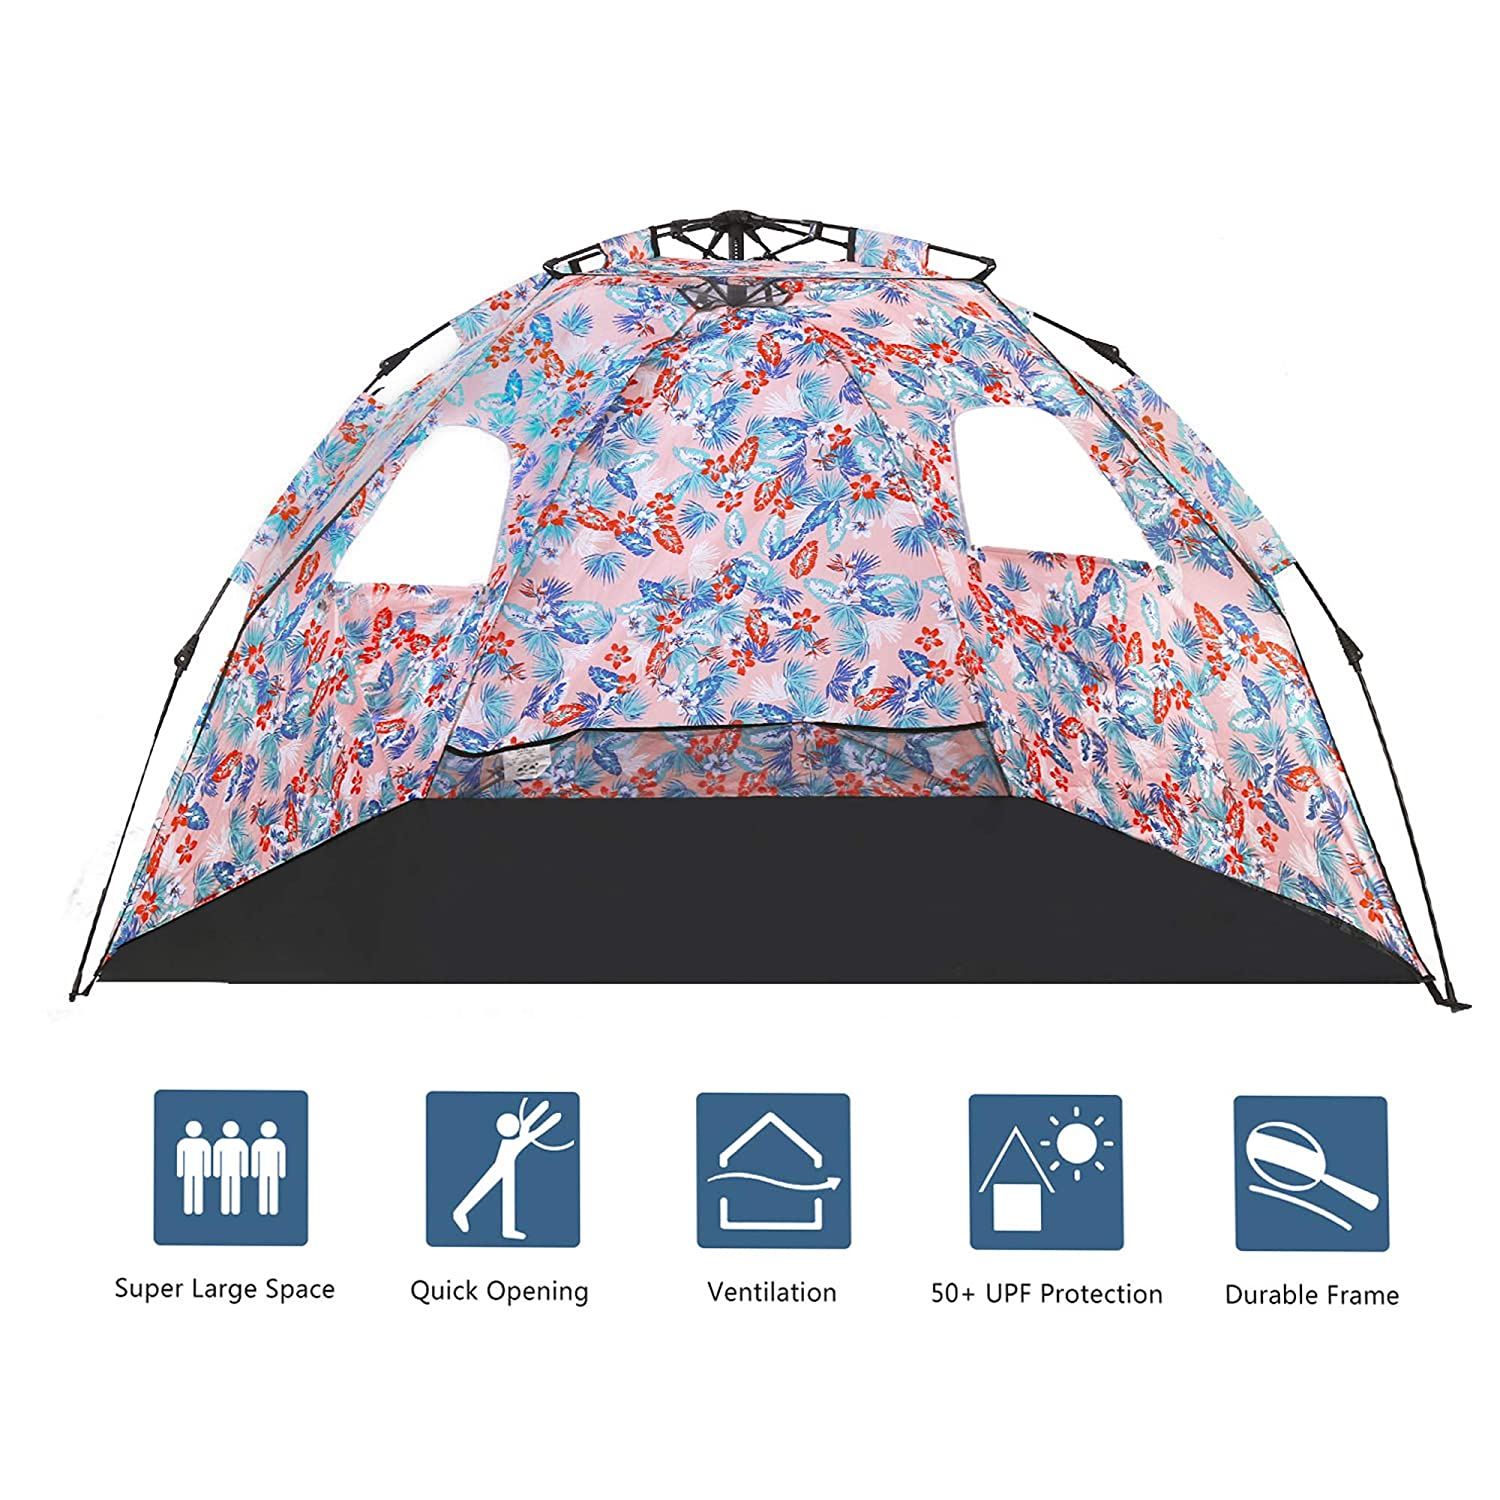 MallBoo Pop Up Beach Tent Sun Shelter,Protable 3-4 Person Sun Shade with Easy Setup and Sun Protection for Kids,Family